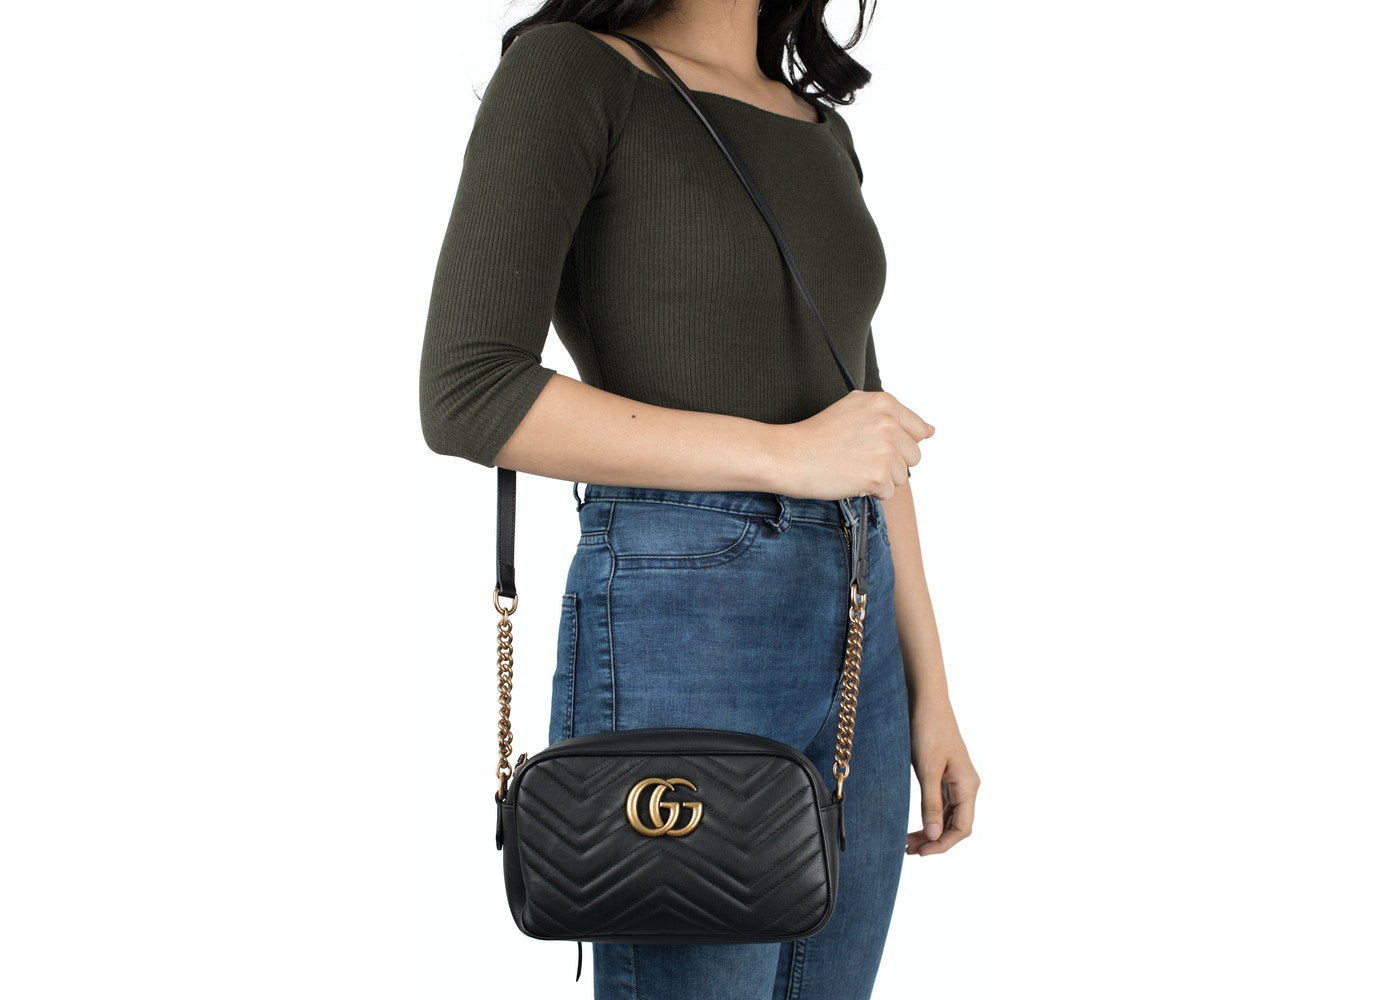 7e2c4c01f5f5 Buy & Sell Gucci Luxury Handbags